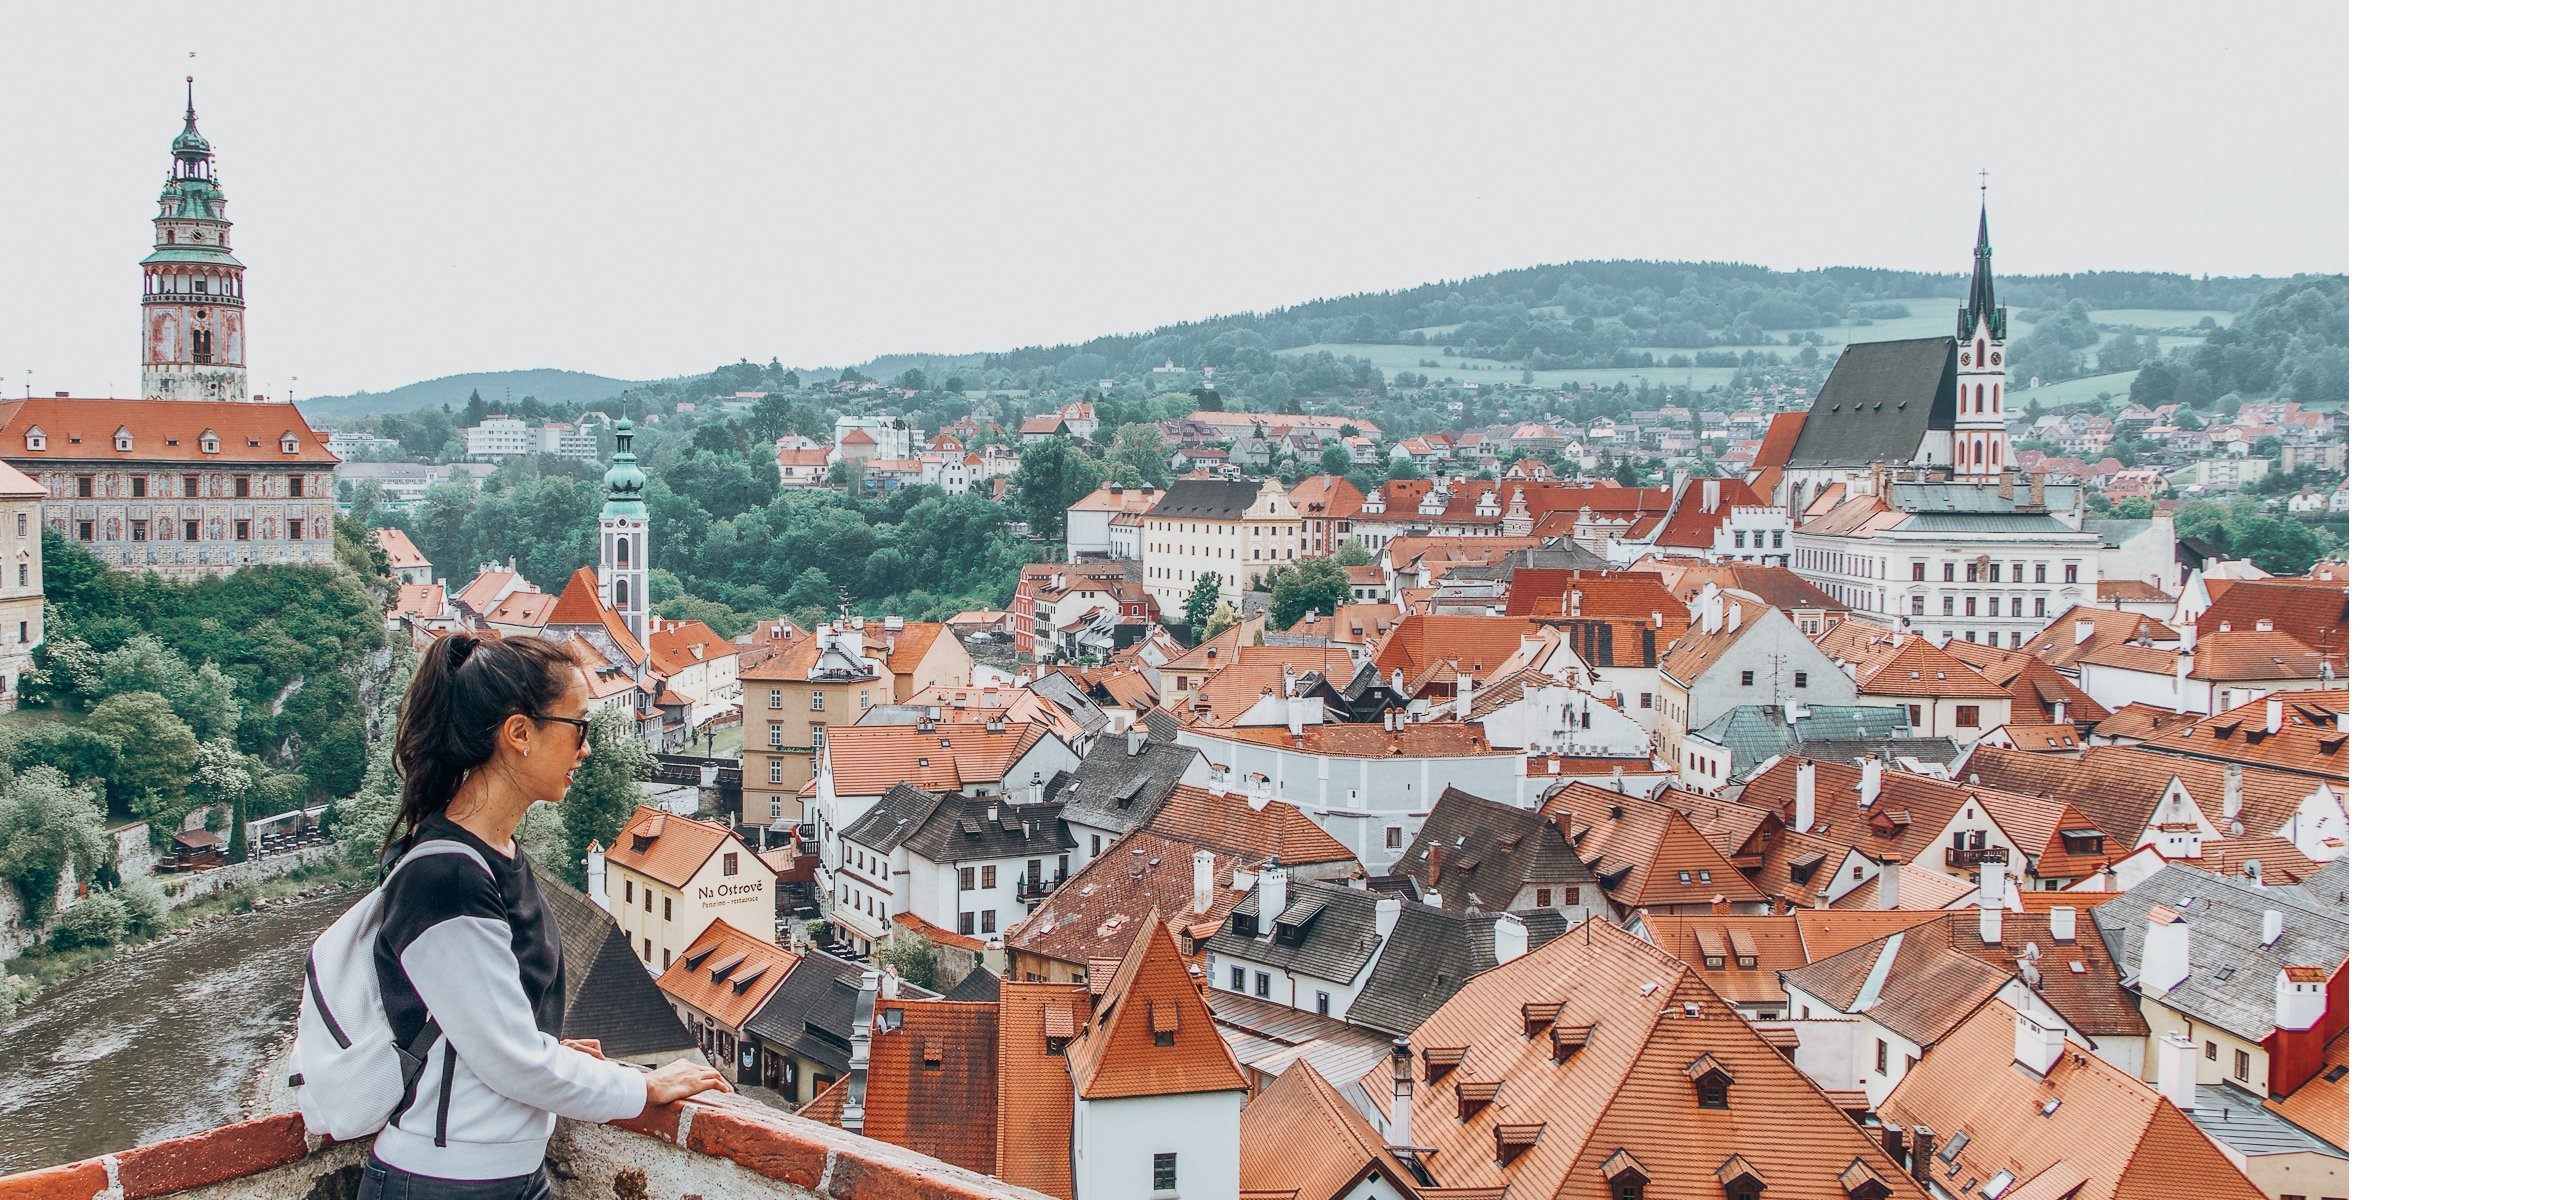 Jasmine overlooking the town of Cesky Krumlov, Czech Republic